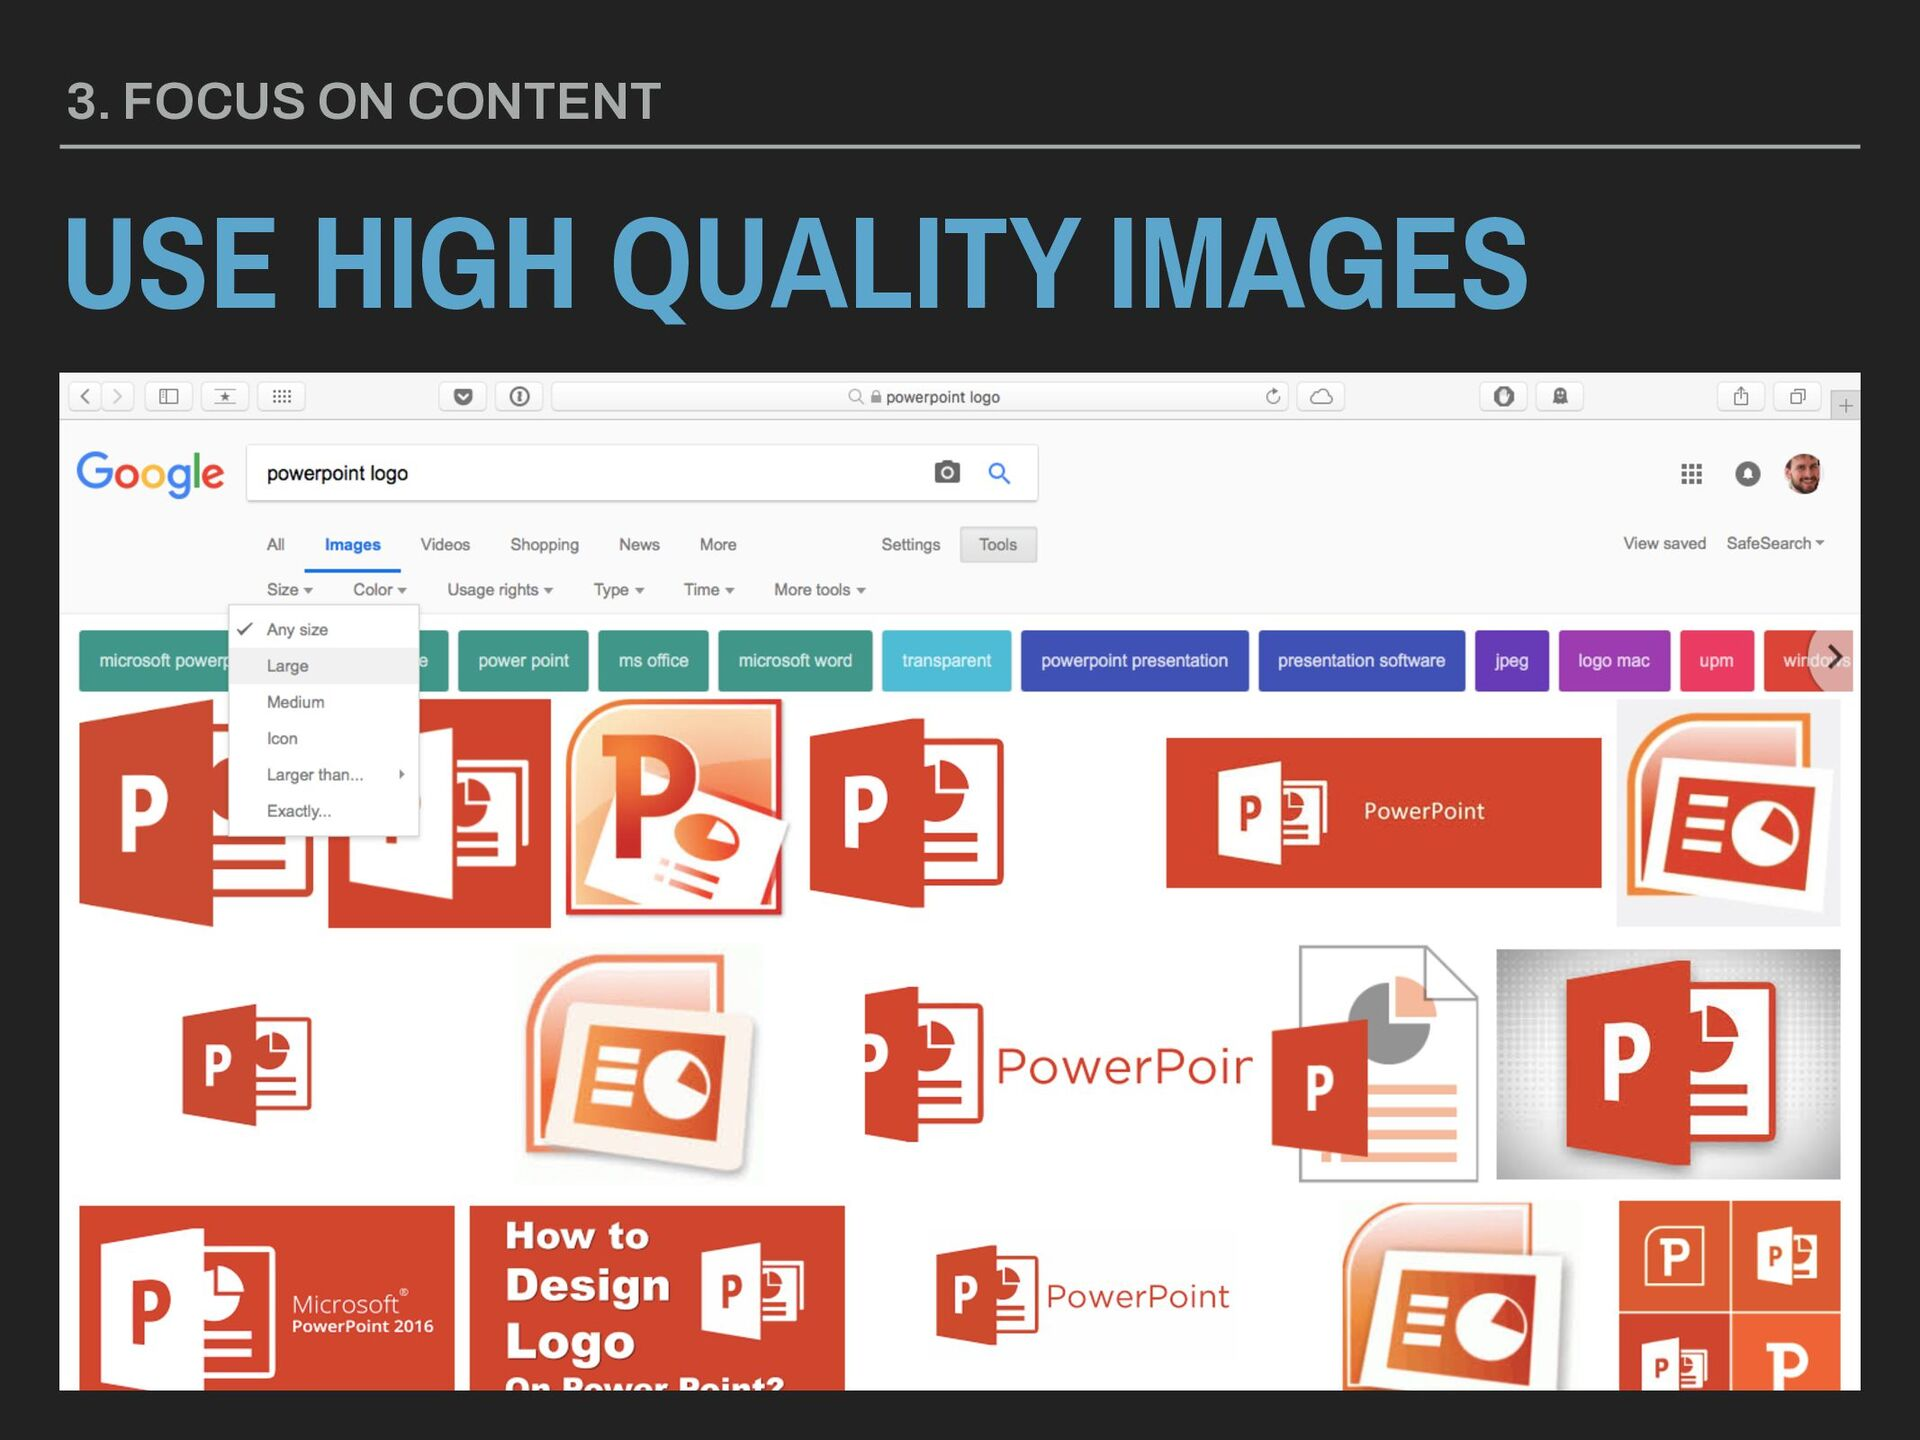 USE HIGH QUALITY IMAGES 3. FOCUS ON CONTENT